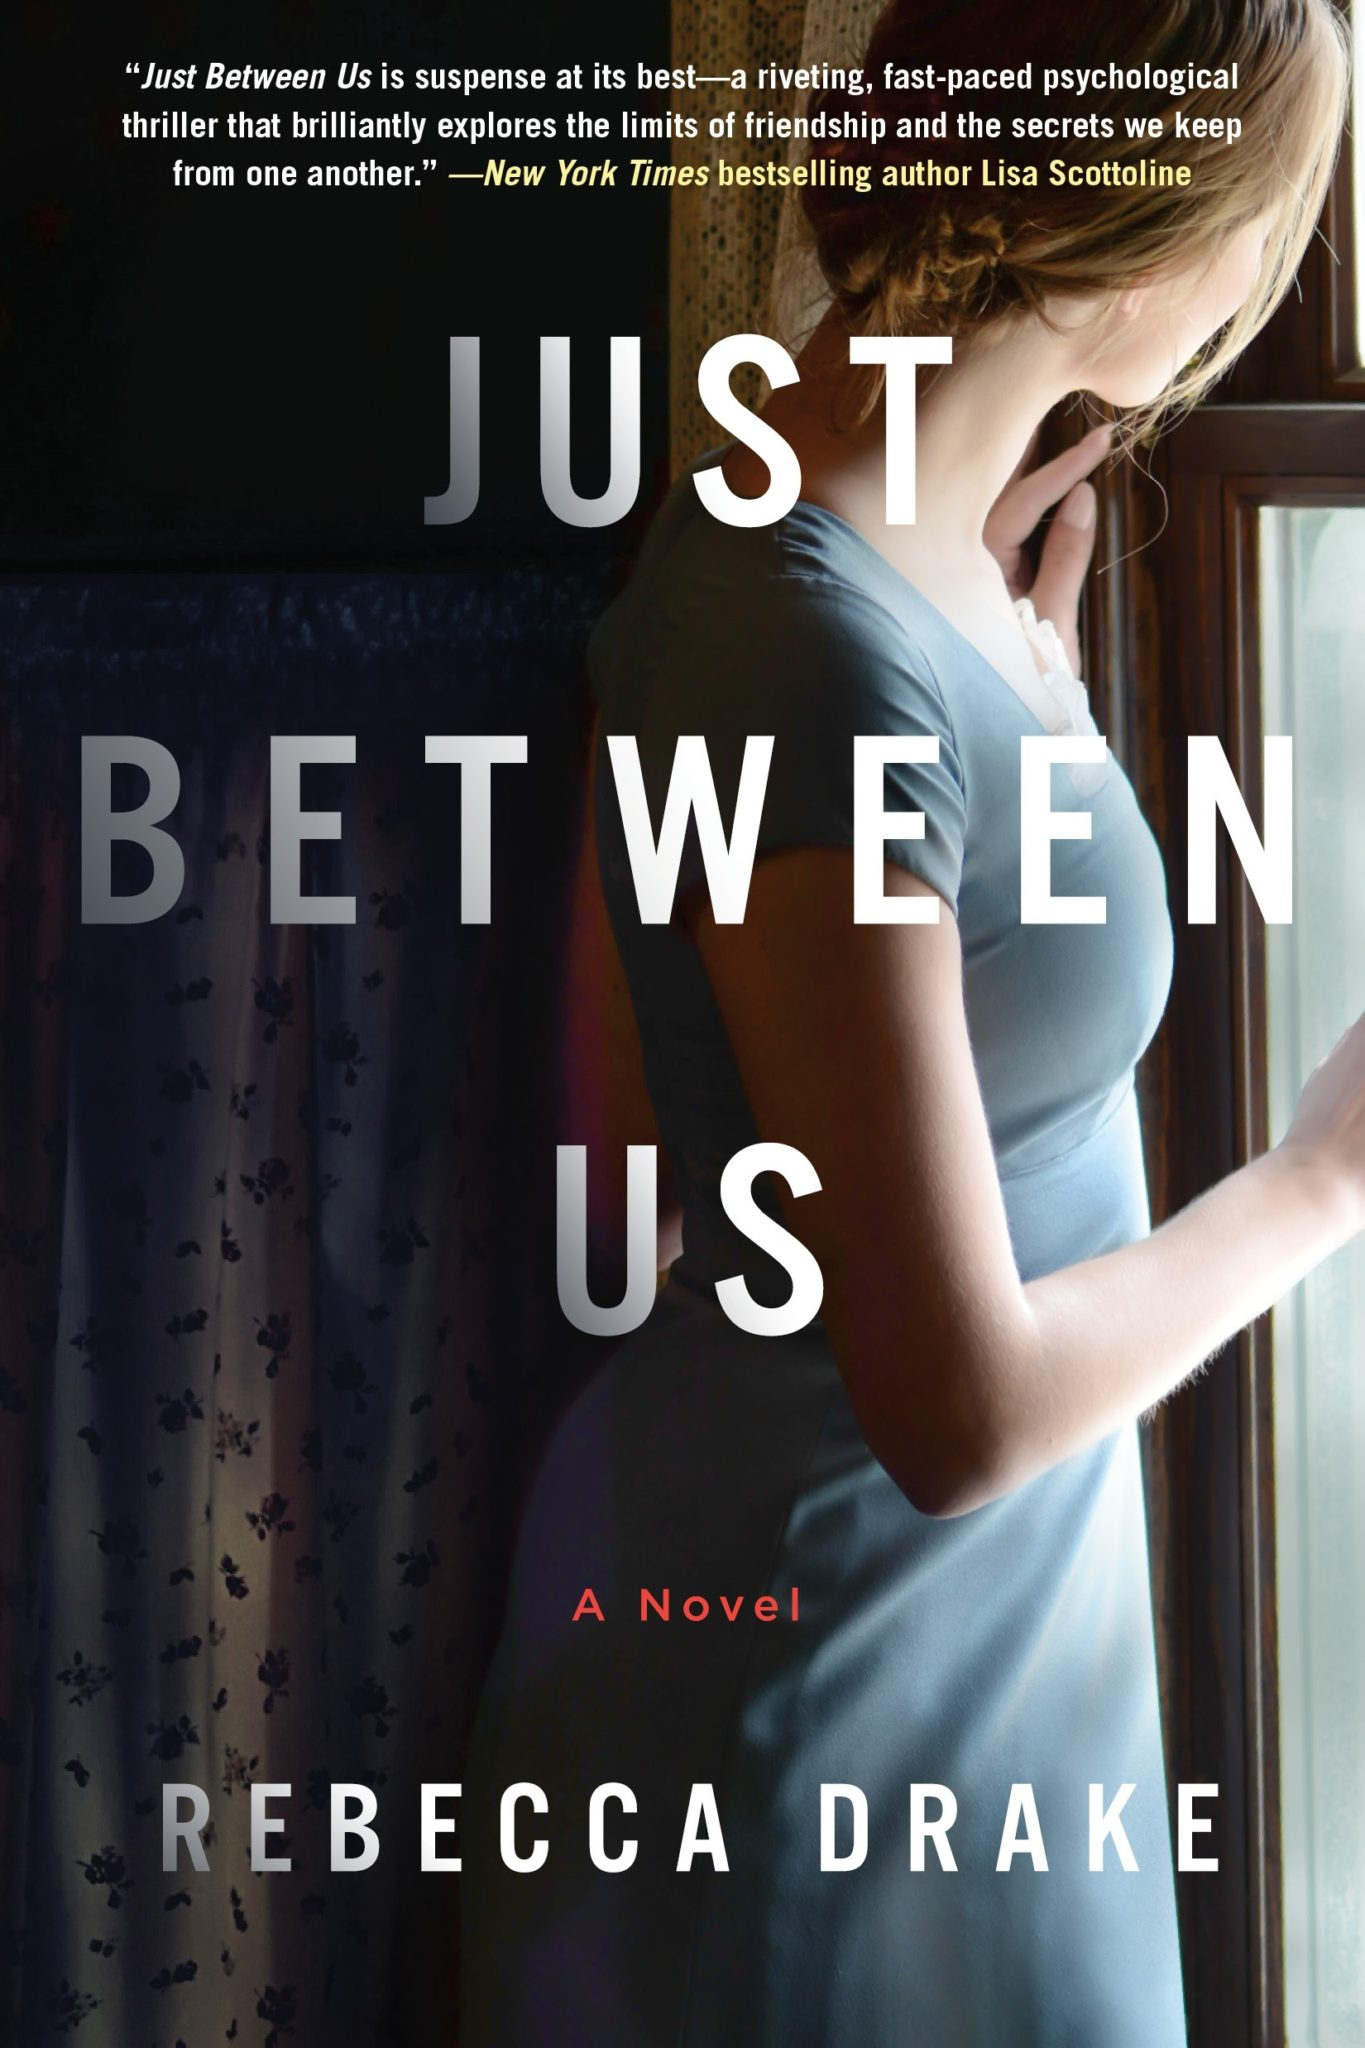 Book Review: Just Between Us by Rebecca Drake